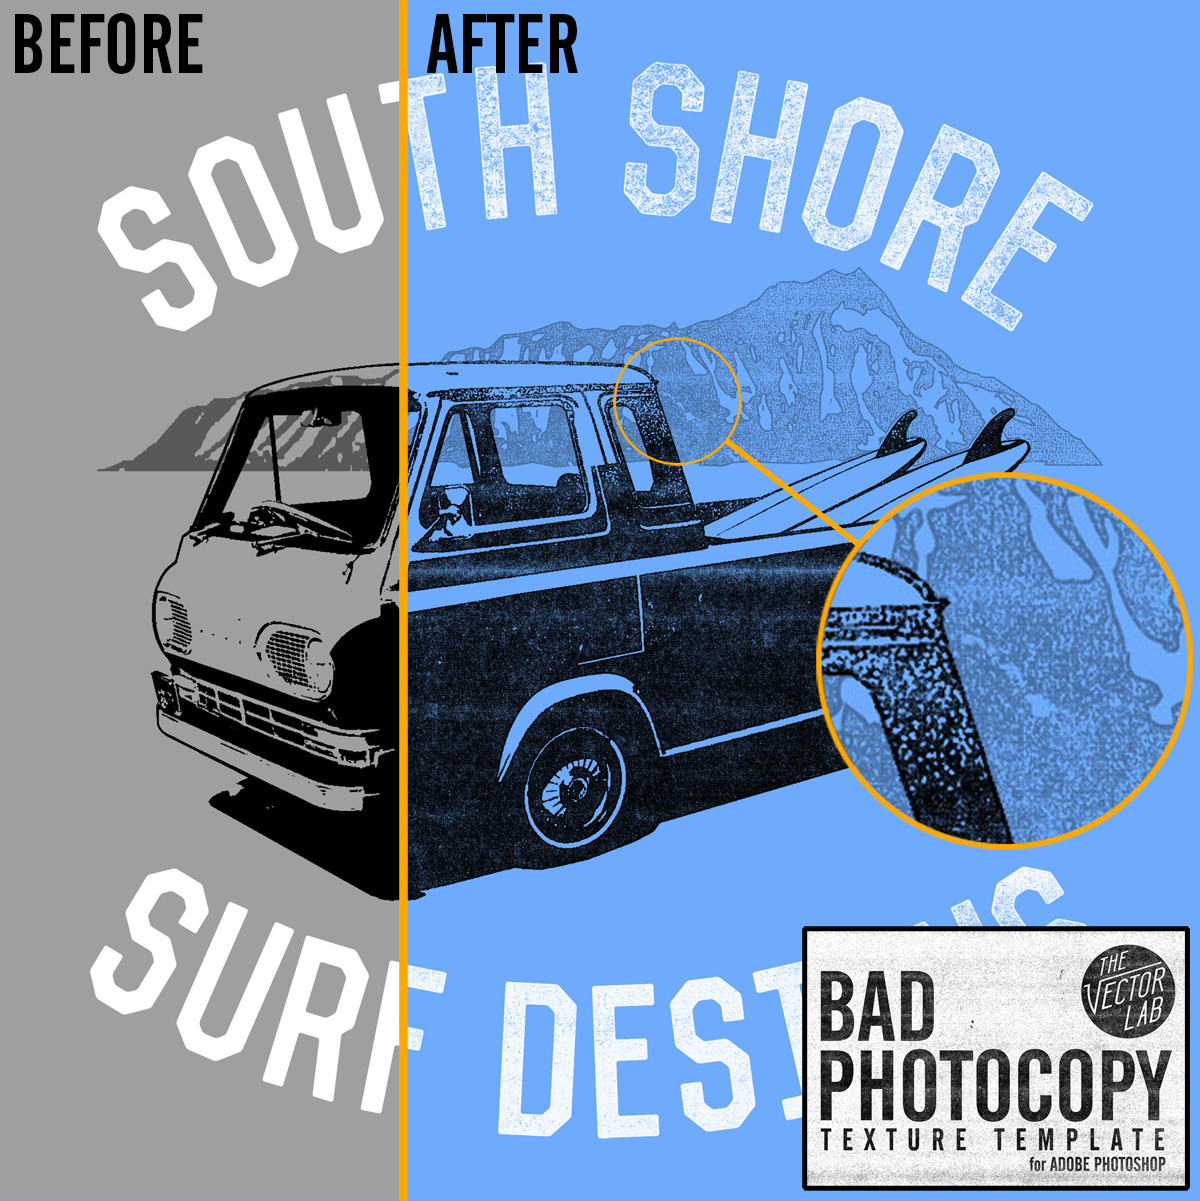 Bad Photocopy Texture - before after